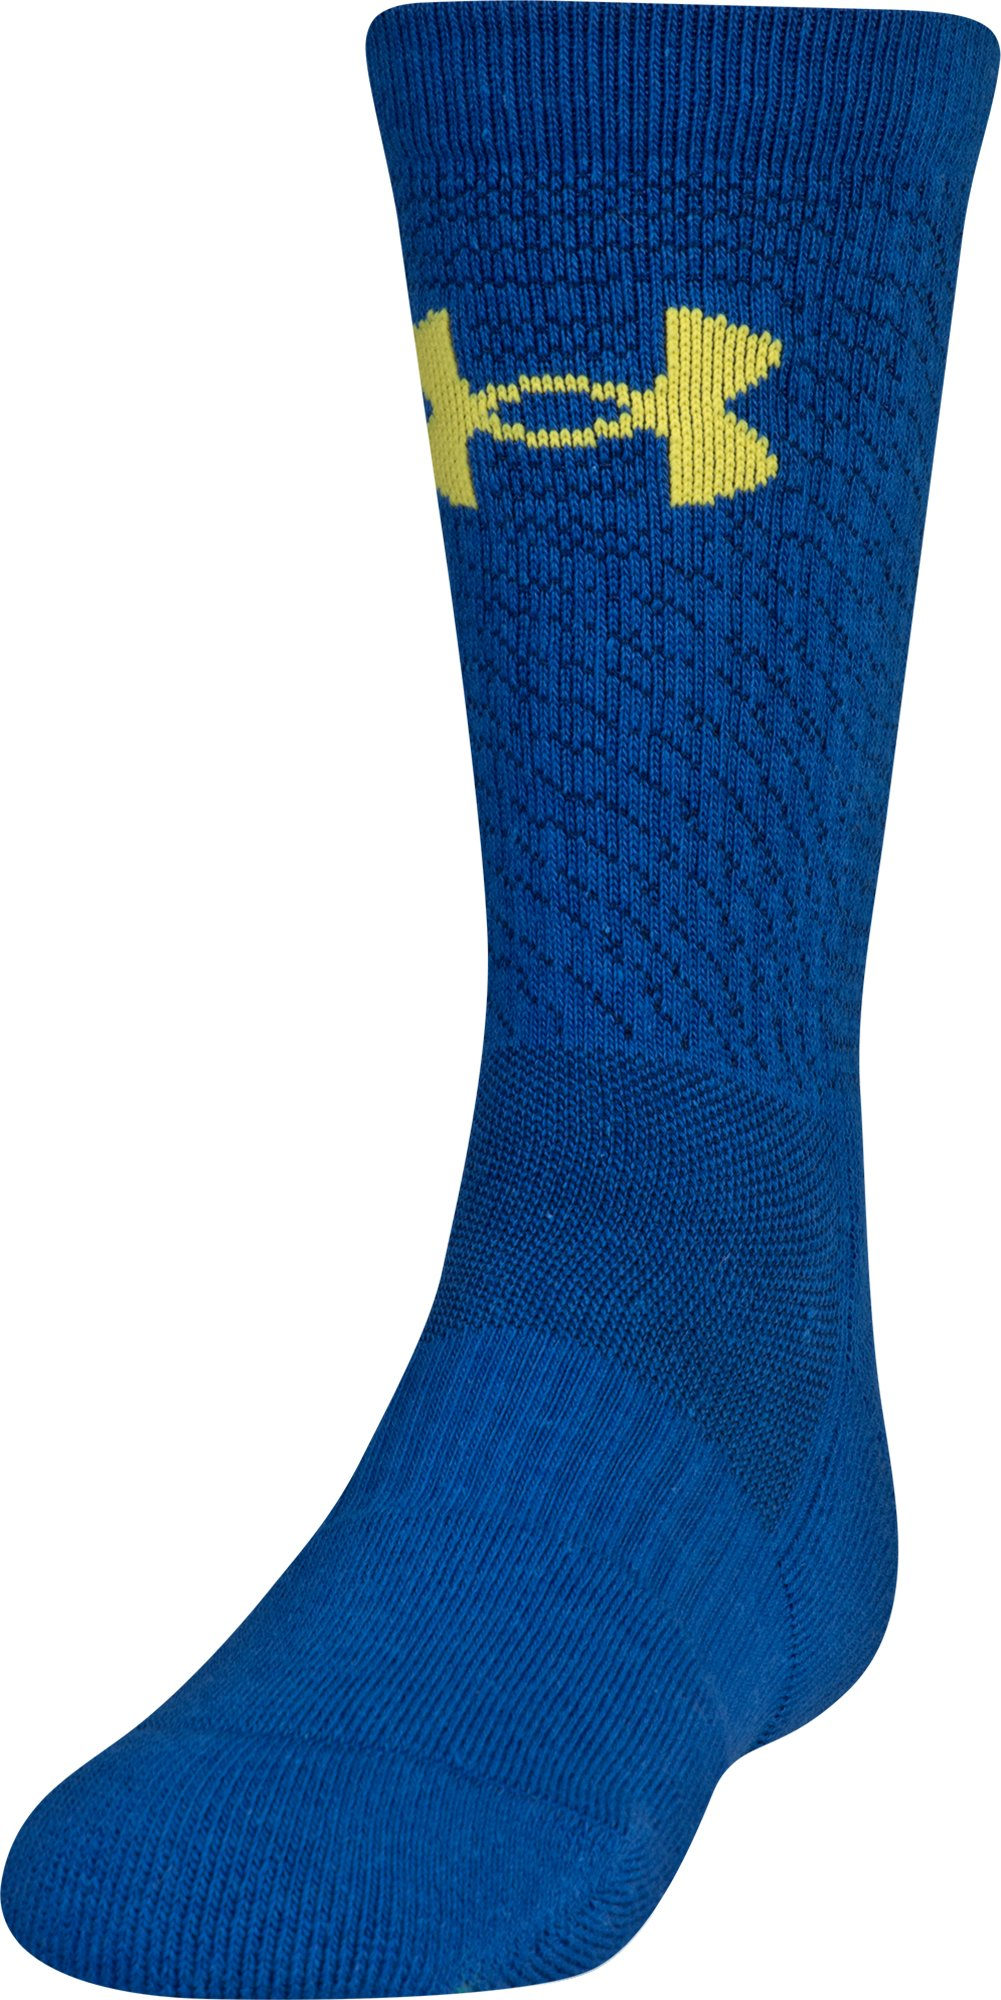 Boys SC30 Phenom 2.0 Crew Socks 3-Pack, Taxi,